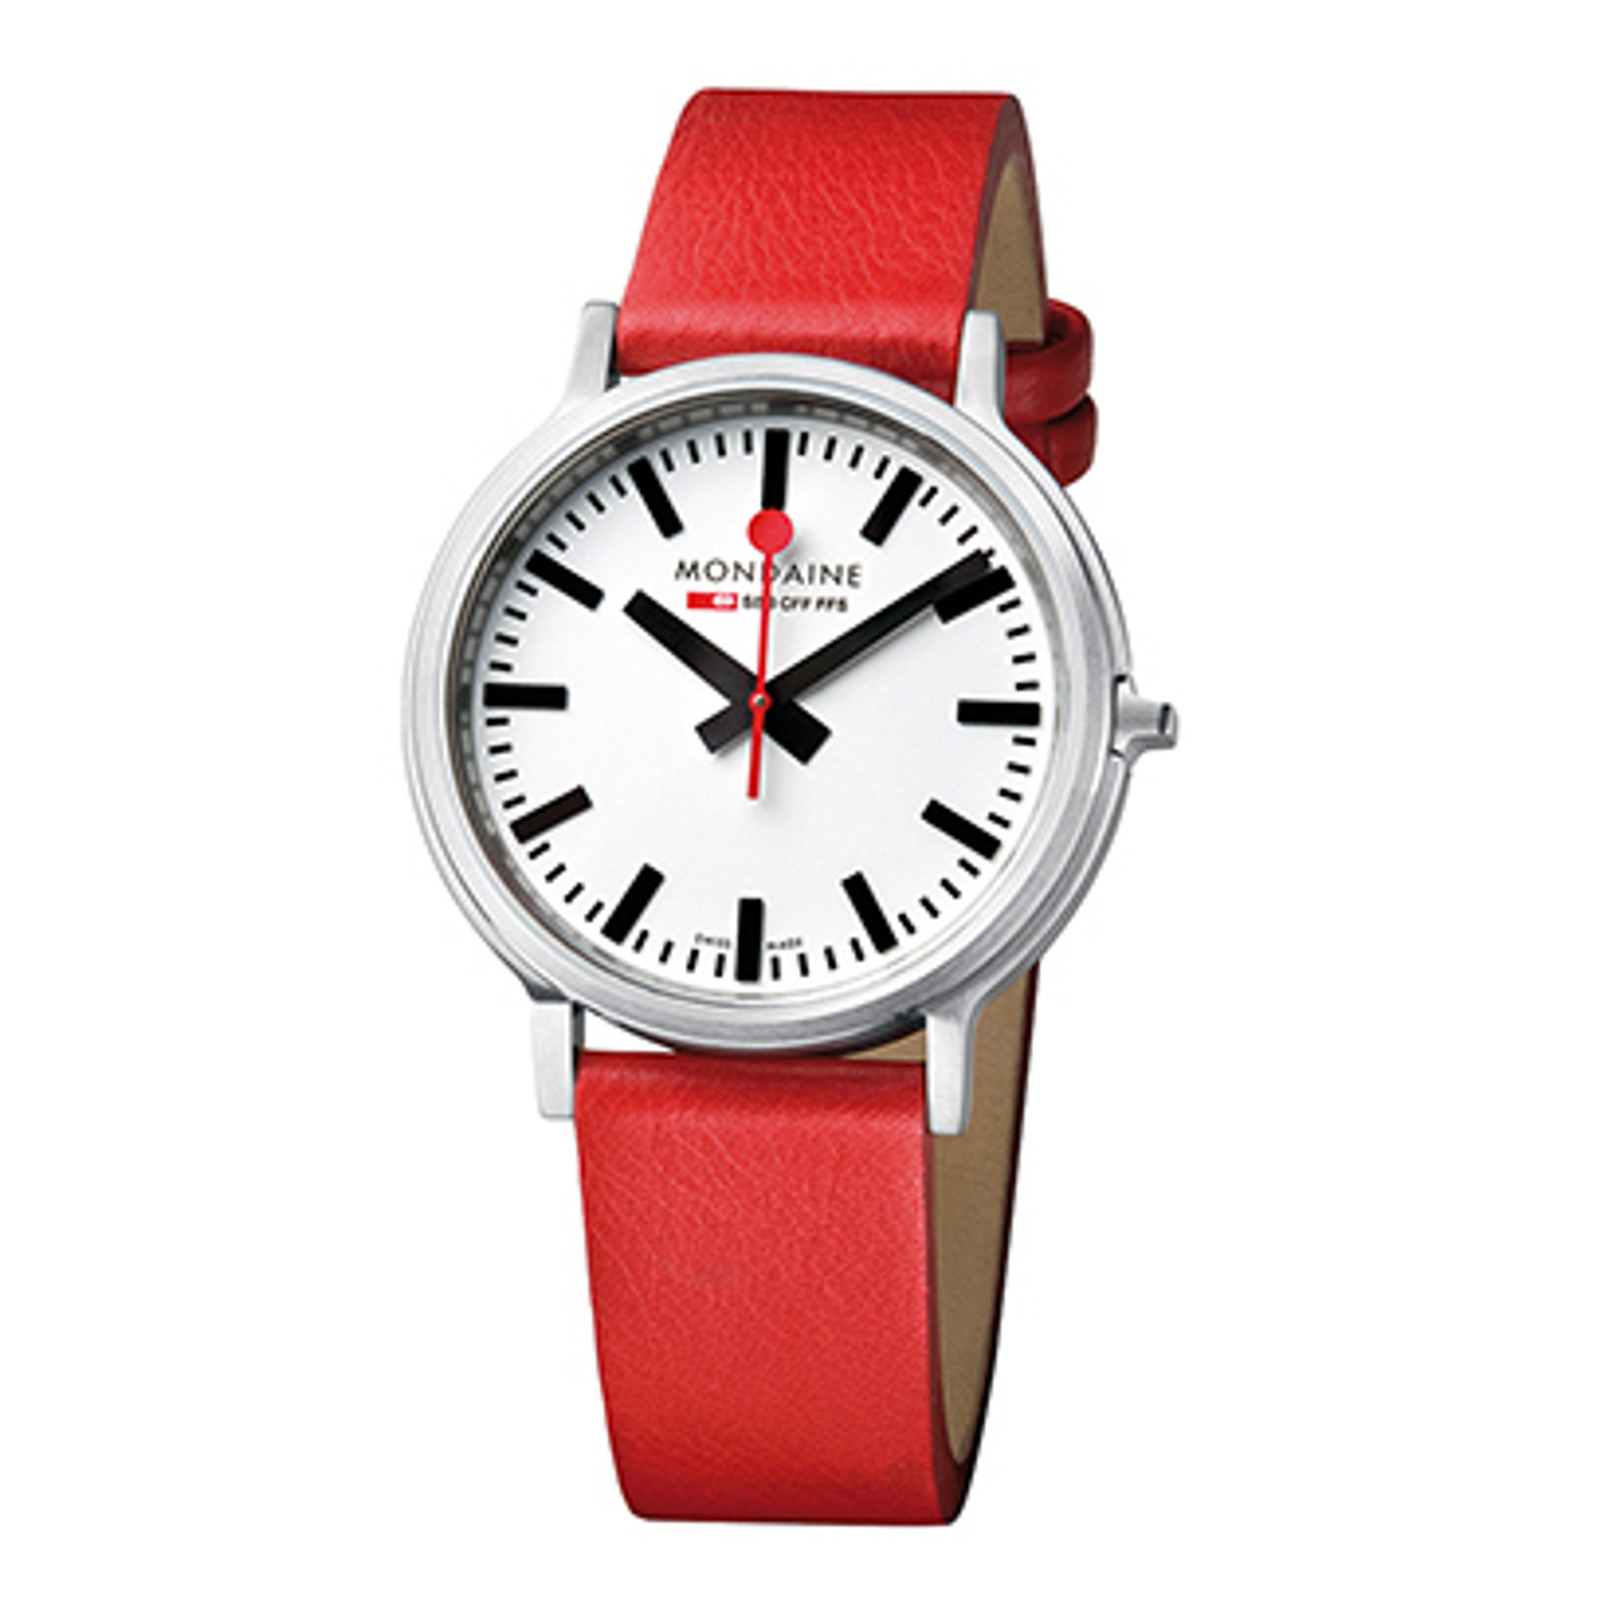 Stop2Go 41mm BackLight - Red Leather Strap White Face